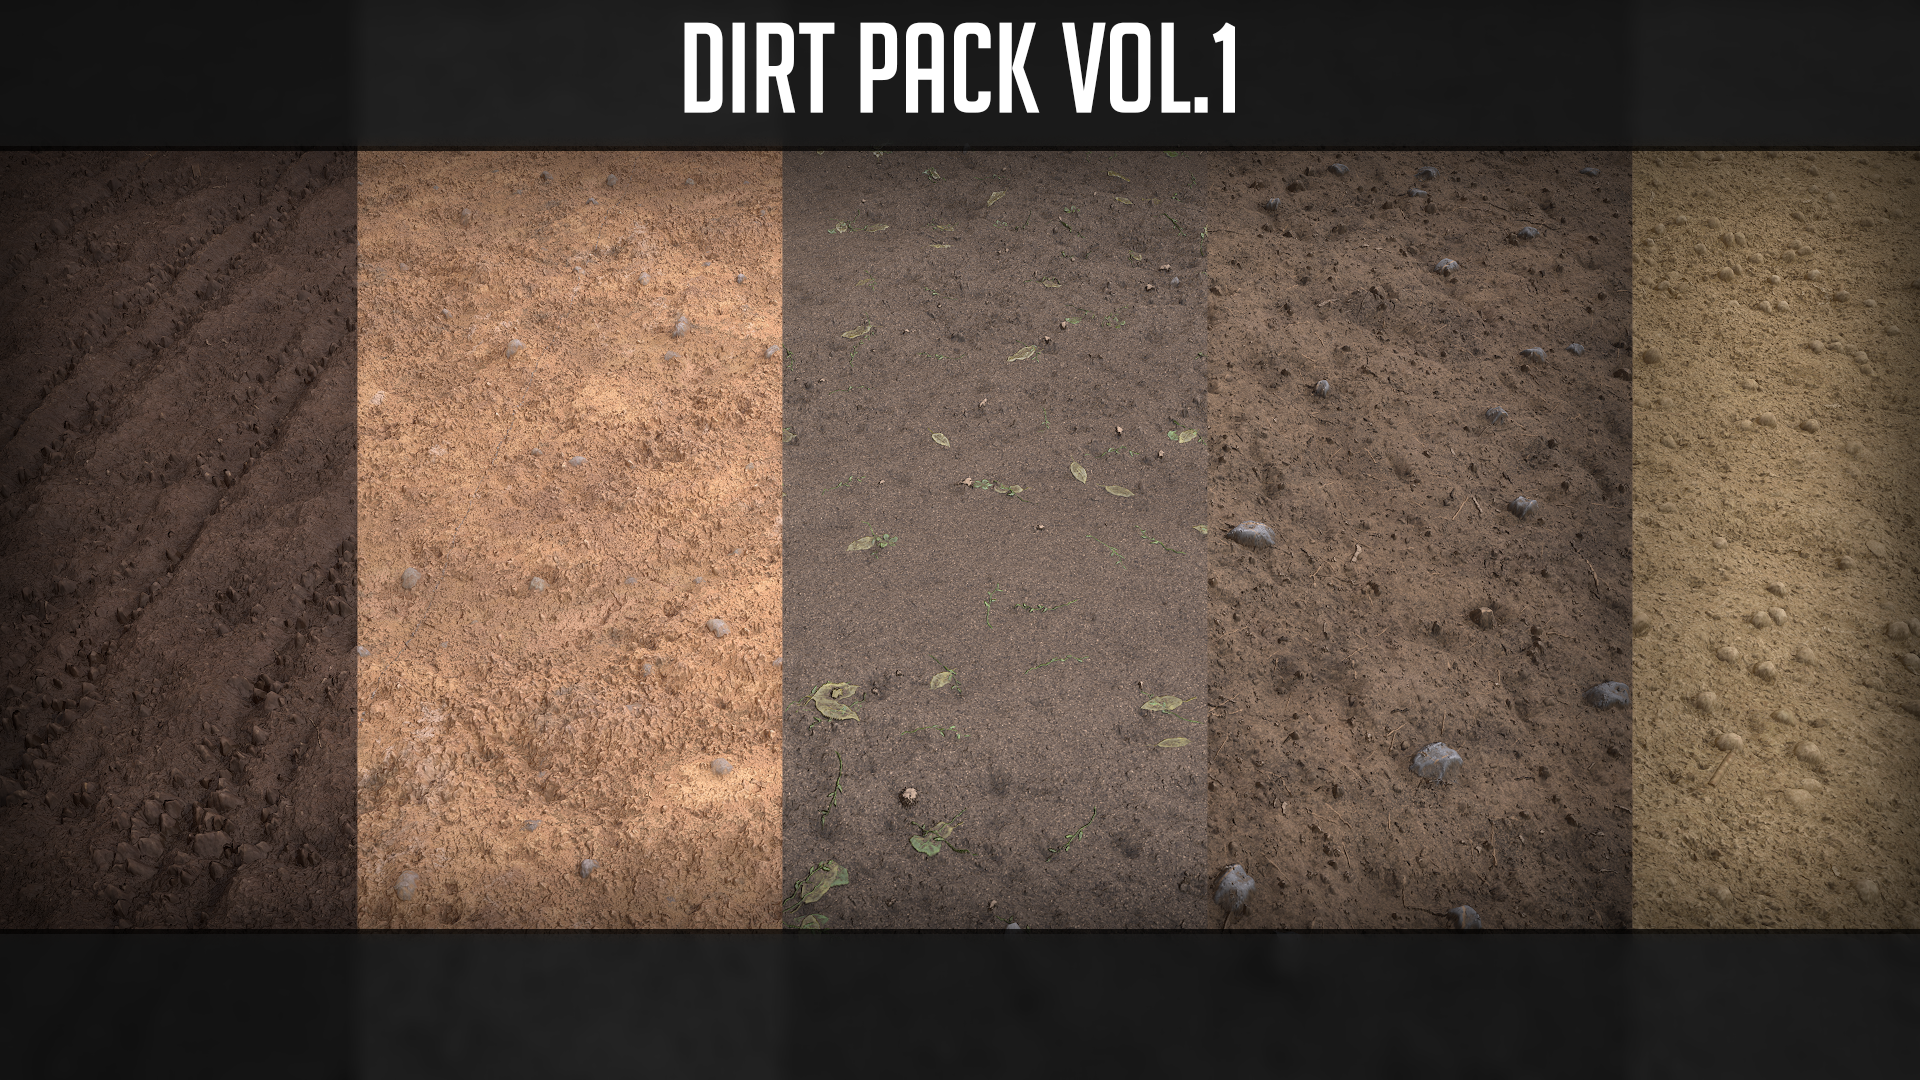 Dirt Pack Vol.1